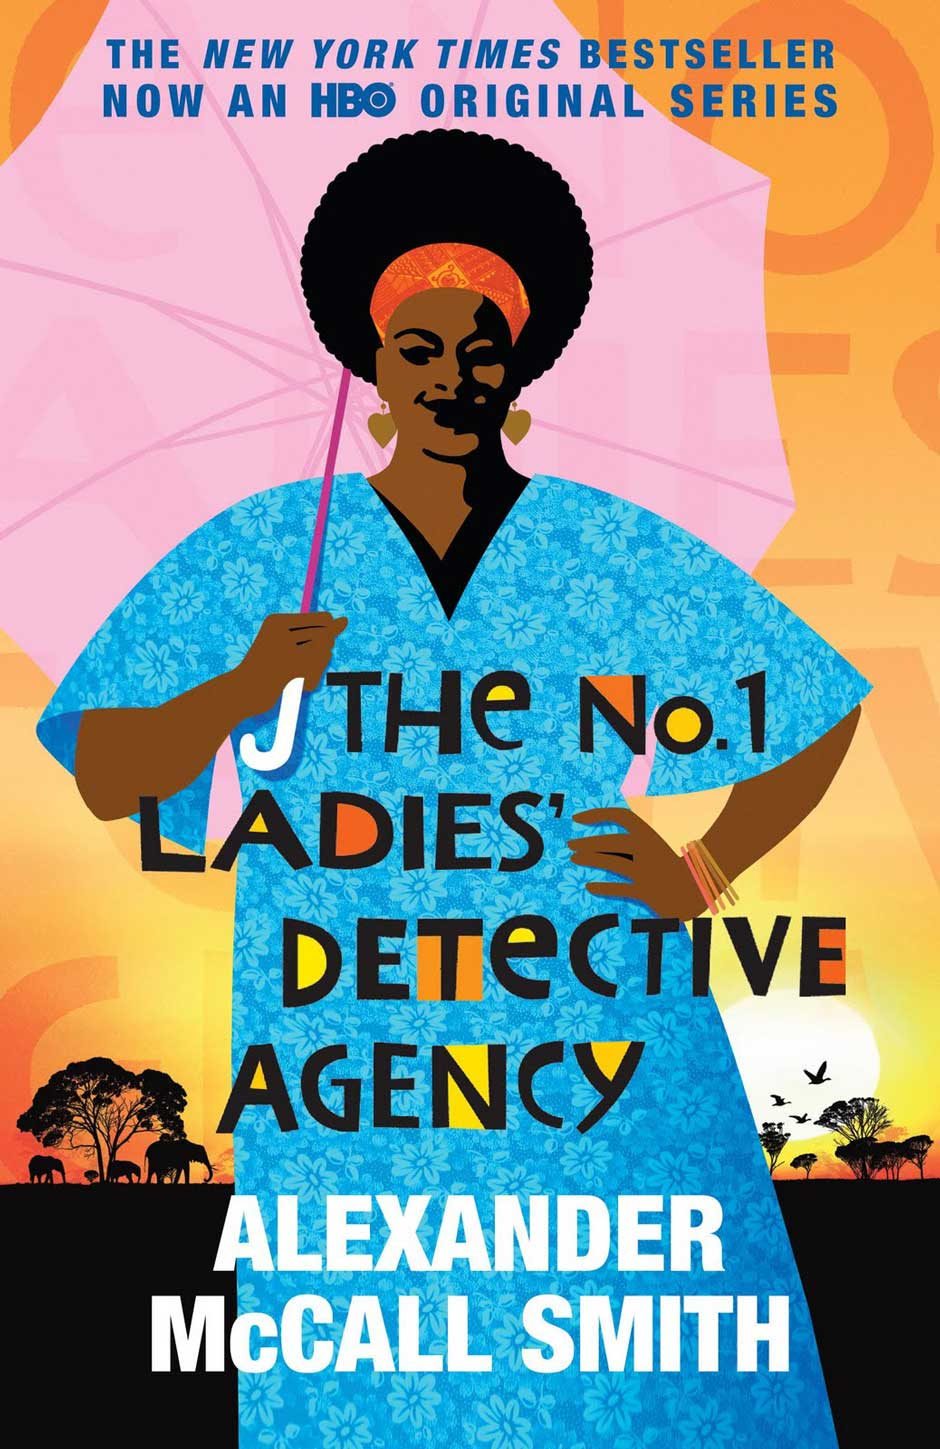 No. 1 Ladies Detective Agency TV series